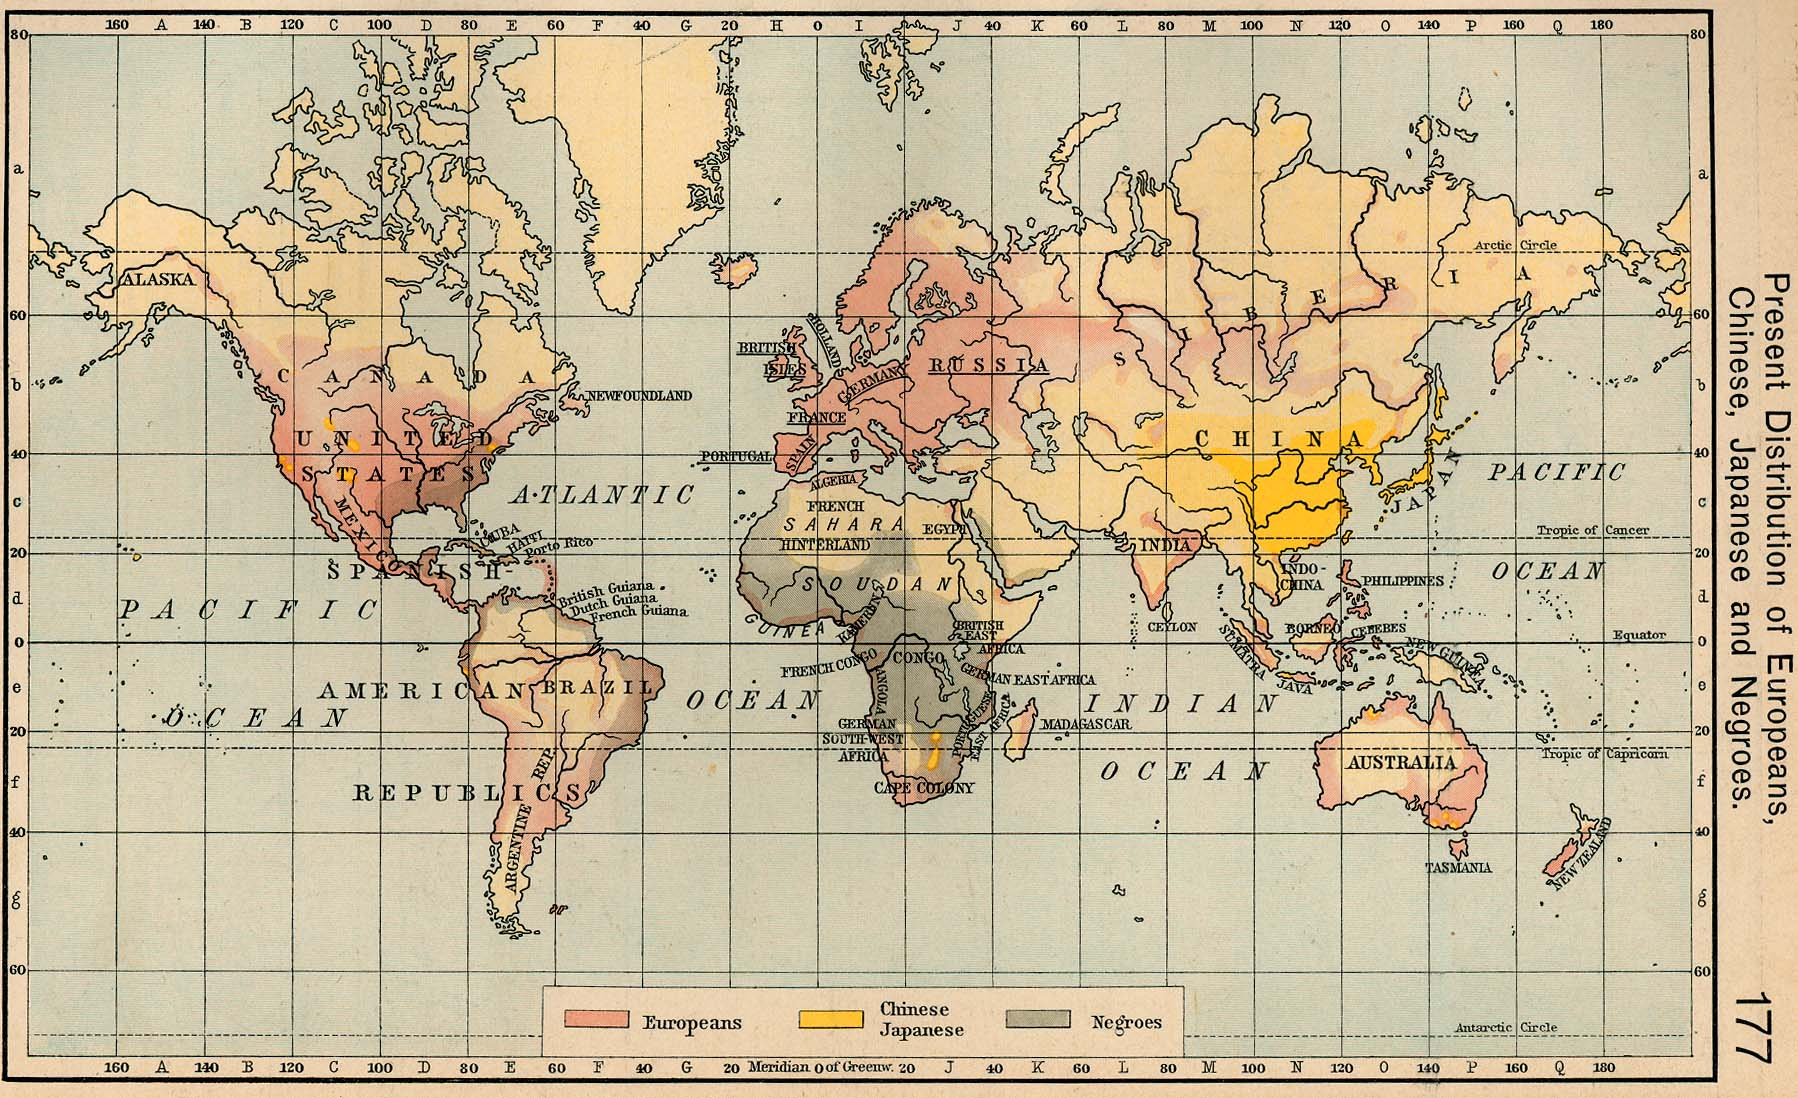 World historical maps perry castaeda map collection ut library present distribution of europeans chinese japanese and negroes 1911 gumiabroncs Images